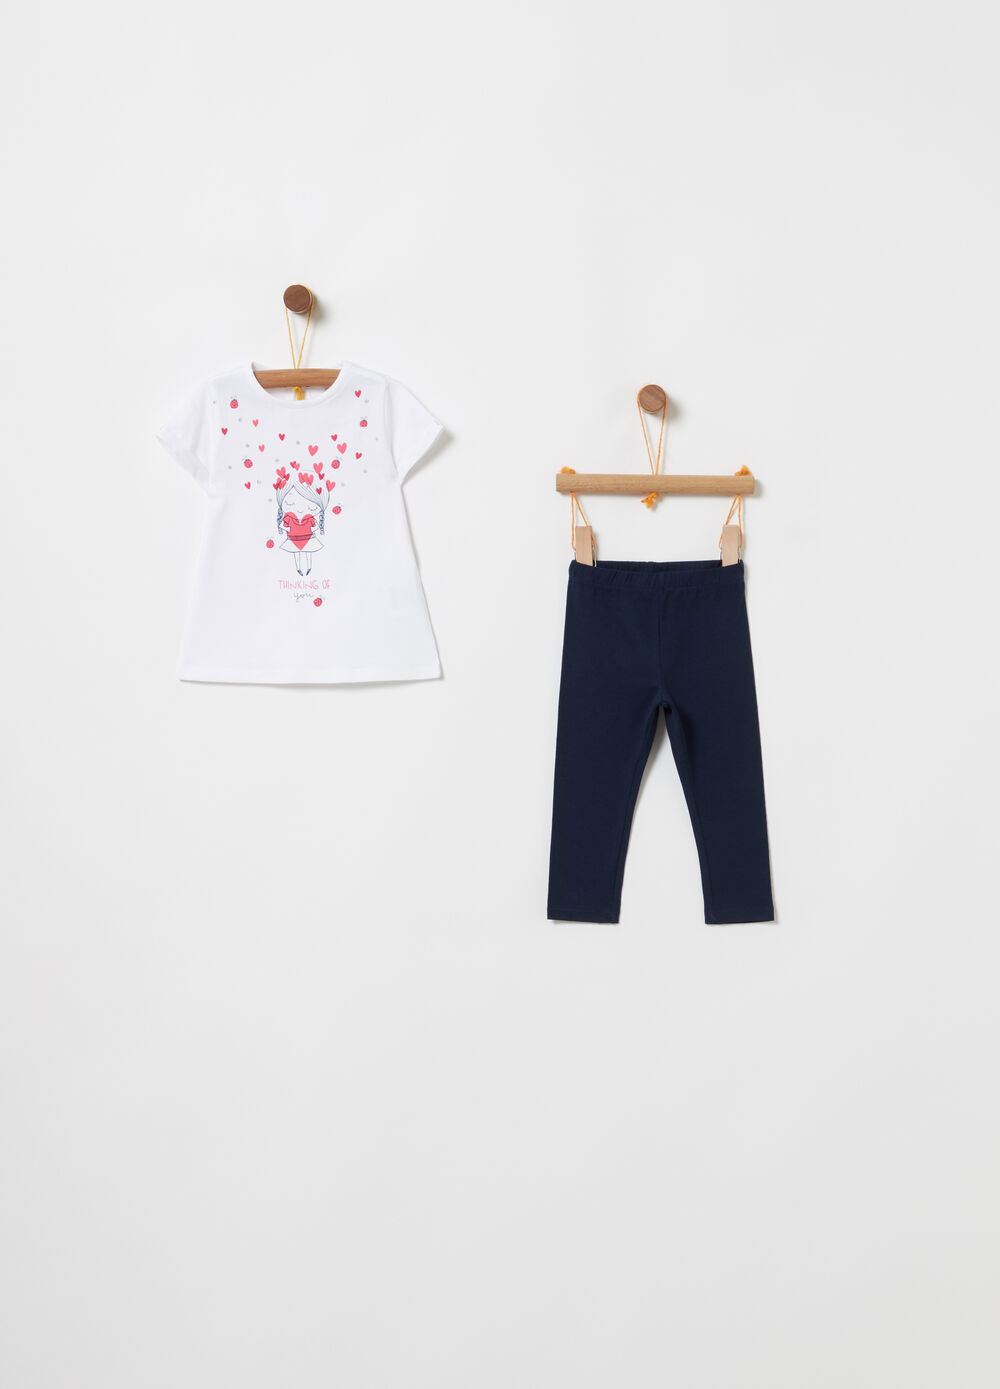 Jogging set with T-shirt and leggings with print